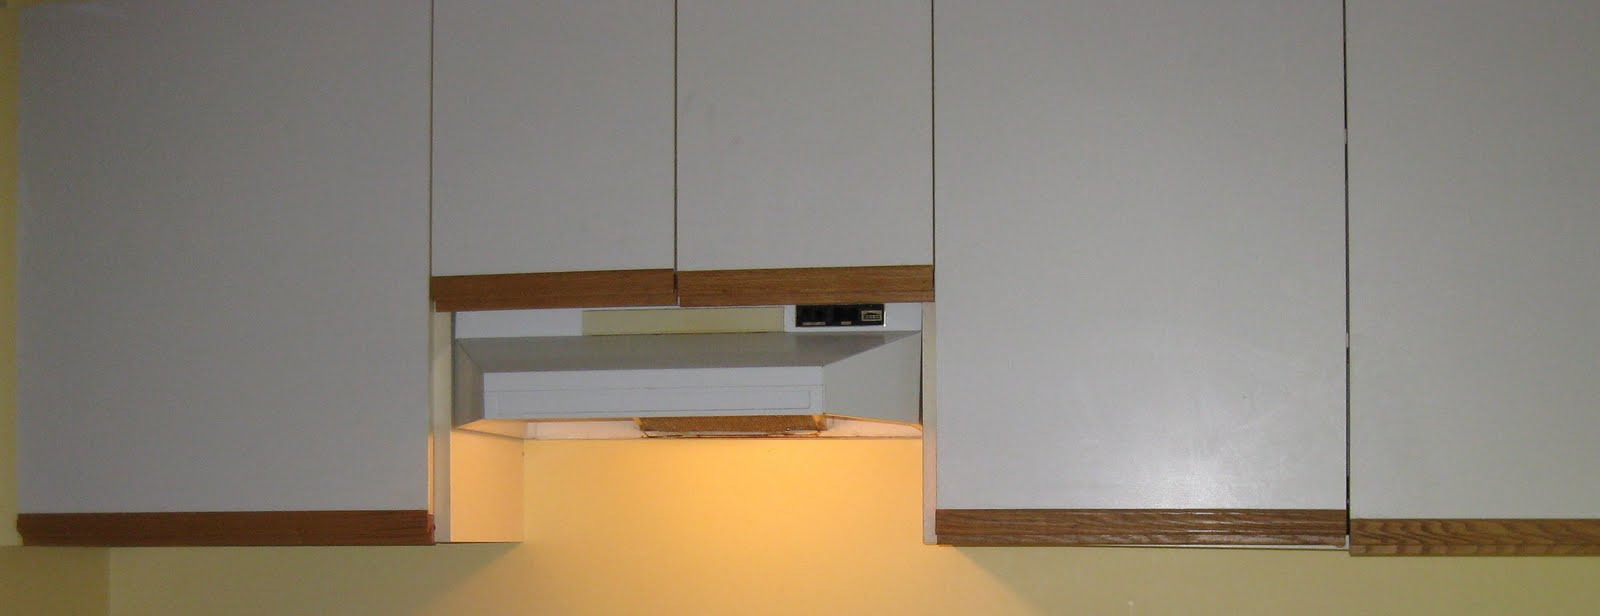 Trim For Cabinets White Melamine Kitchen Cabinets With The Oak Trim 12424920170430